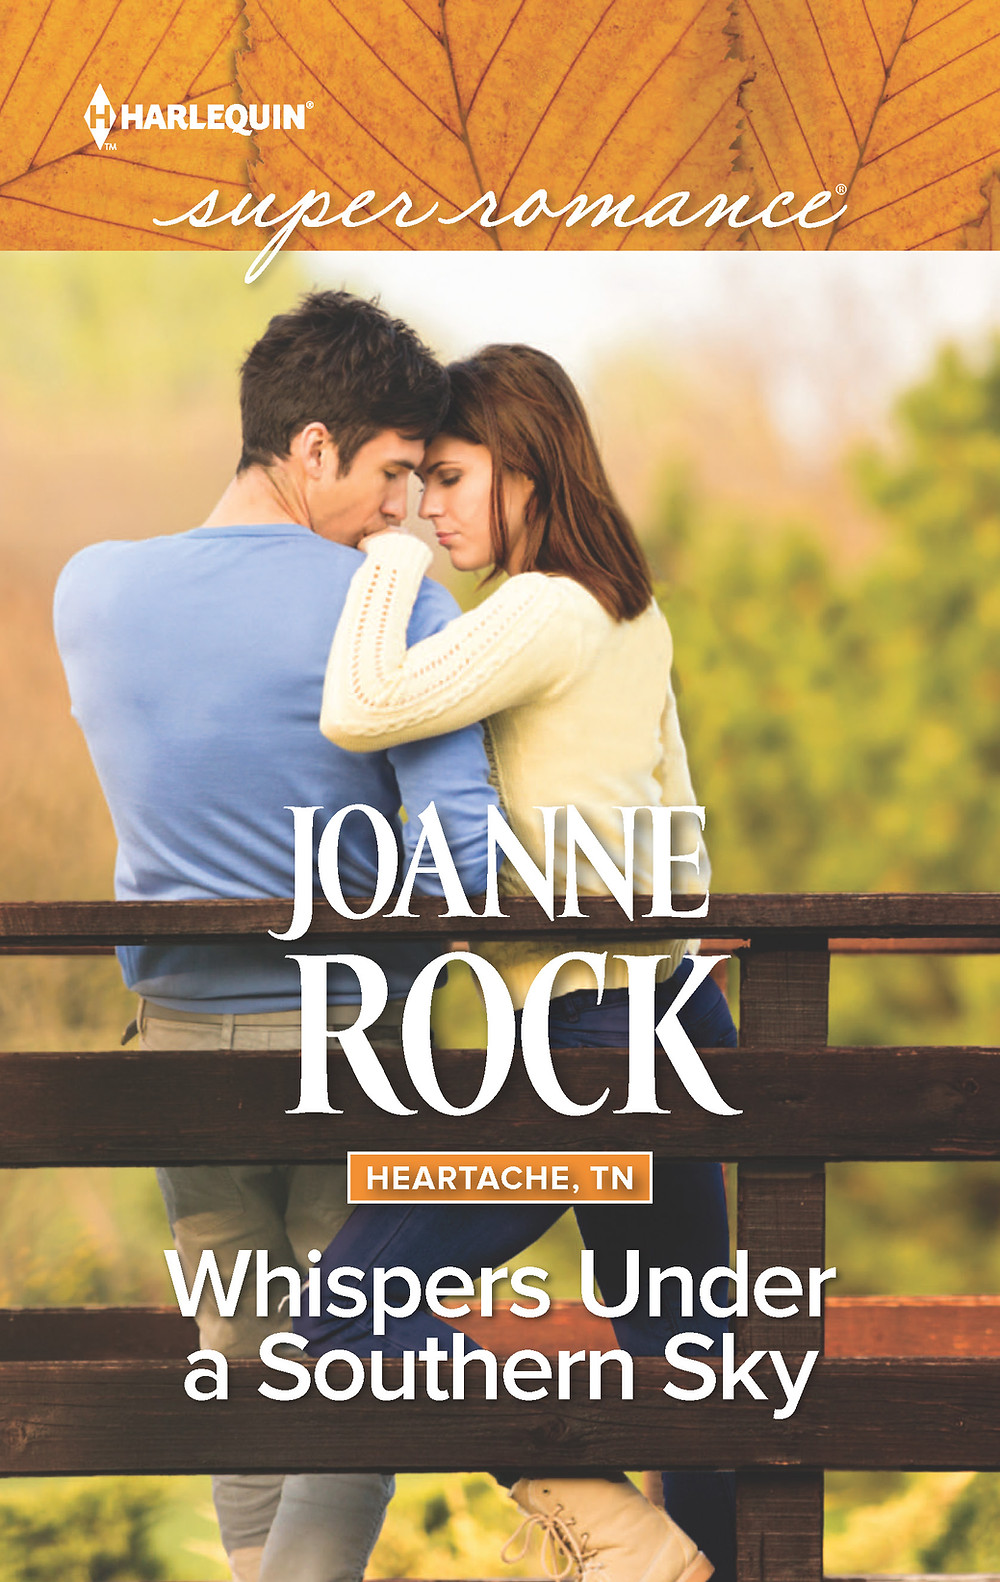 Whispers Under a Southern Sky by Joanne Rock